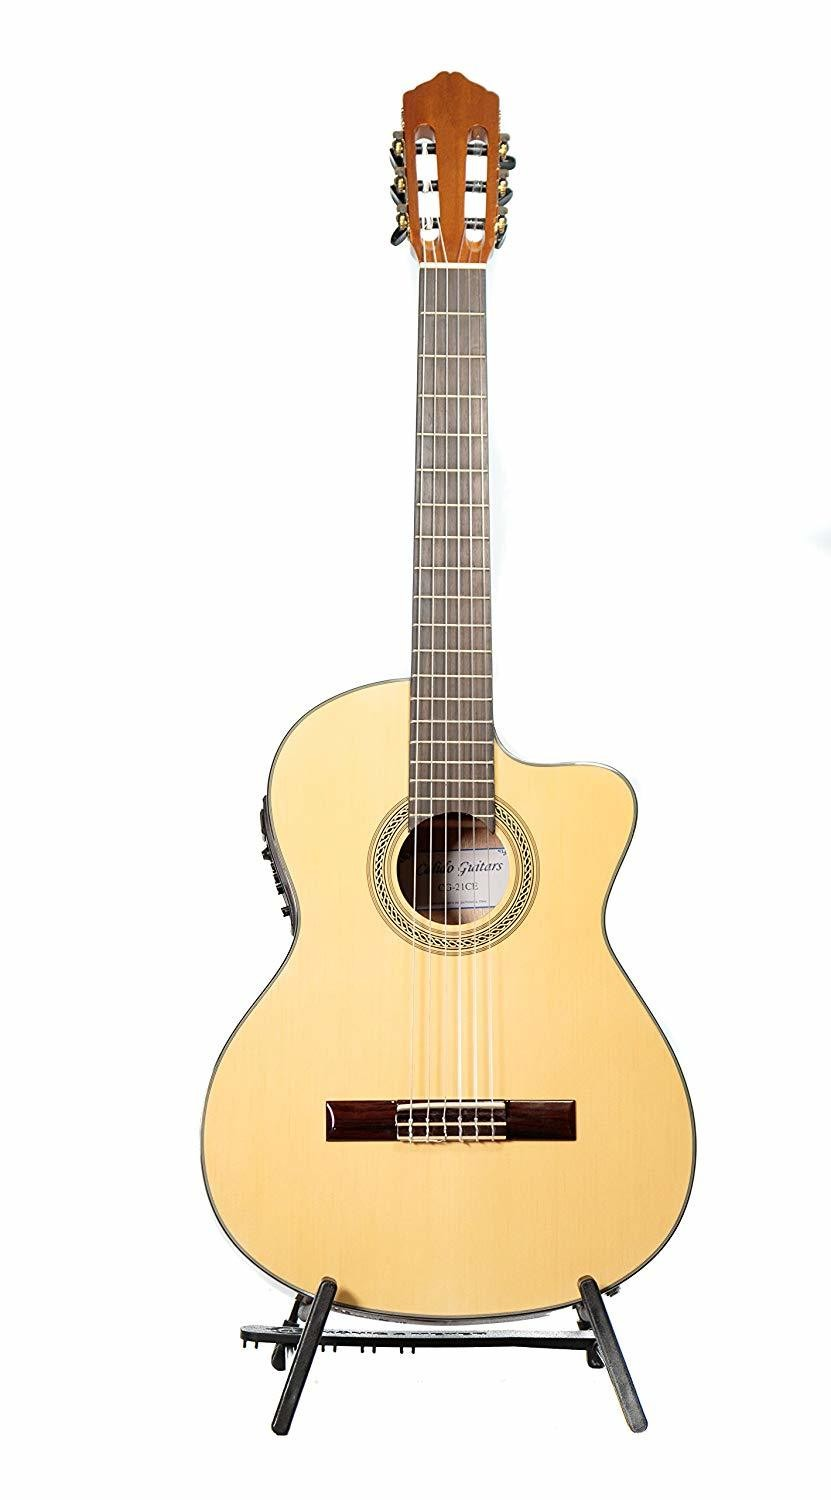 Calido CG 21CE - Acoustic Electric Cutaway - Nylon String Guitar with Crossrock Gig Bag